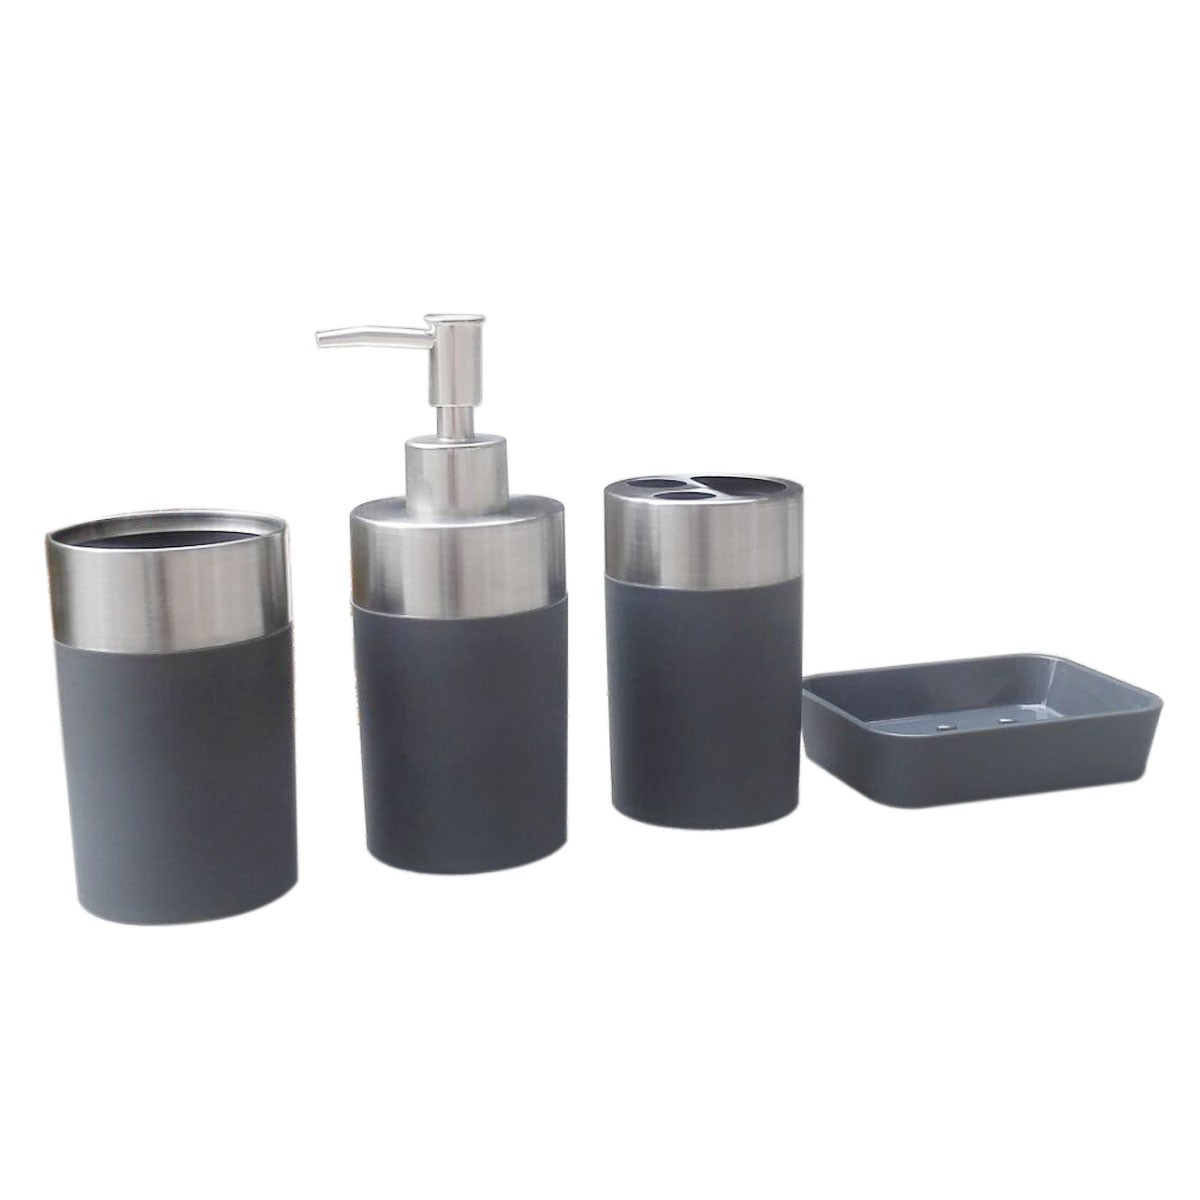 4 Piece Bathroom Accessory Set Grey Collection Dk St021